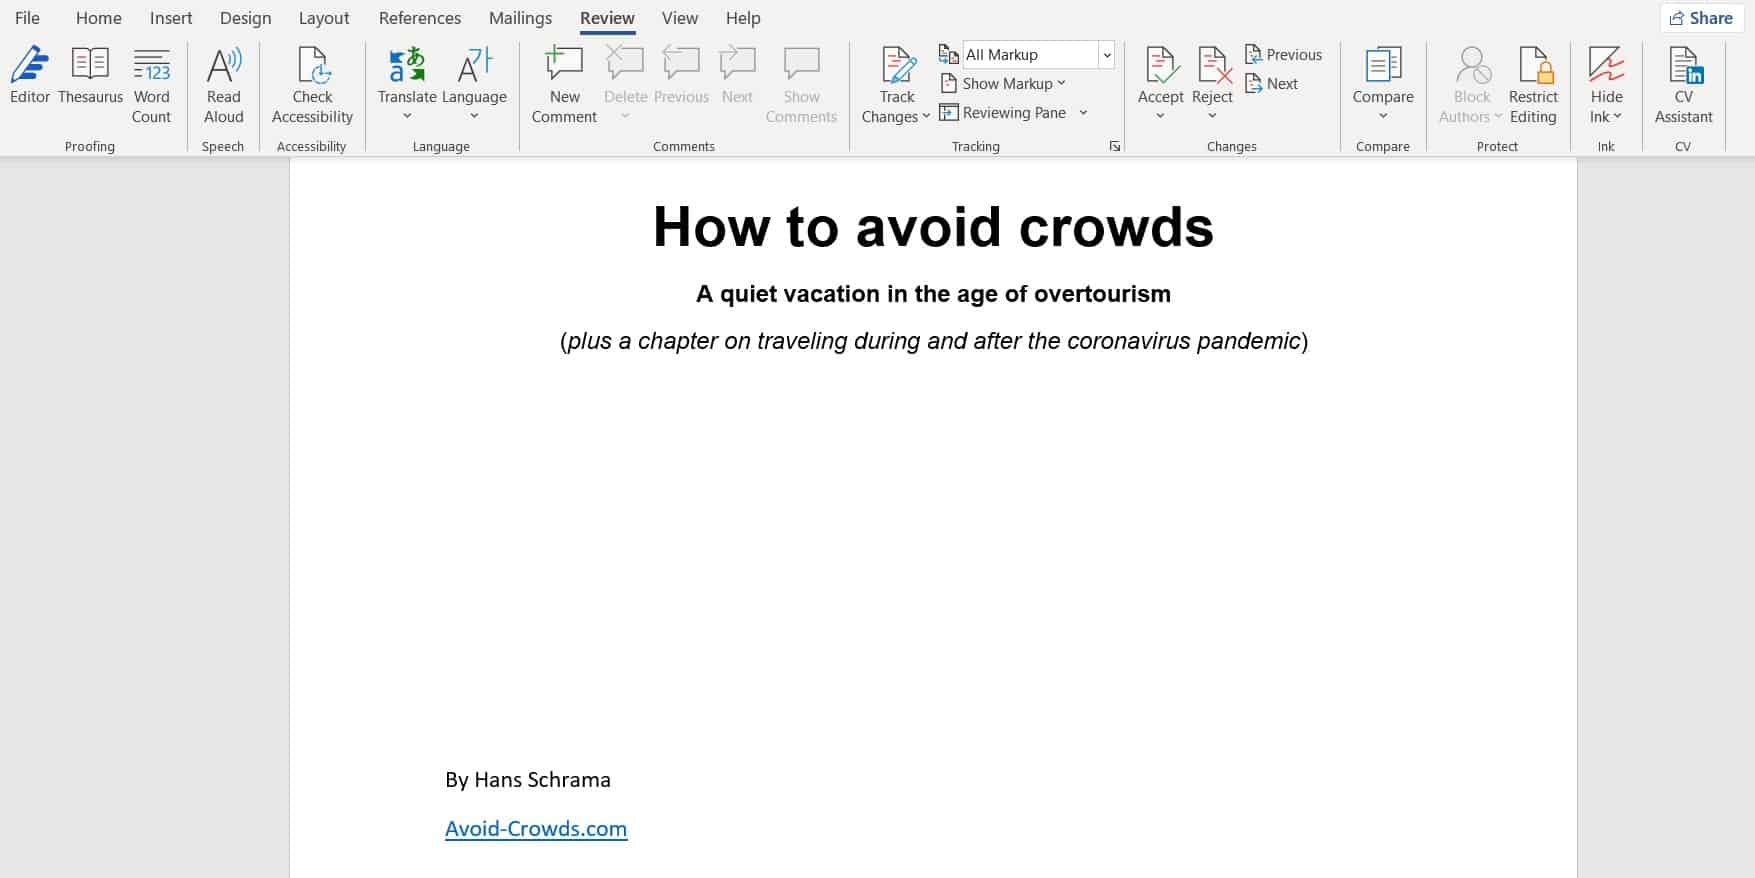 Launching a book: How to Avoid Crowds